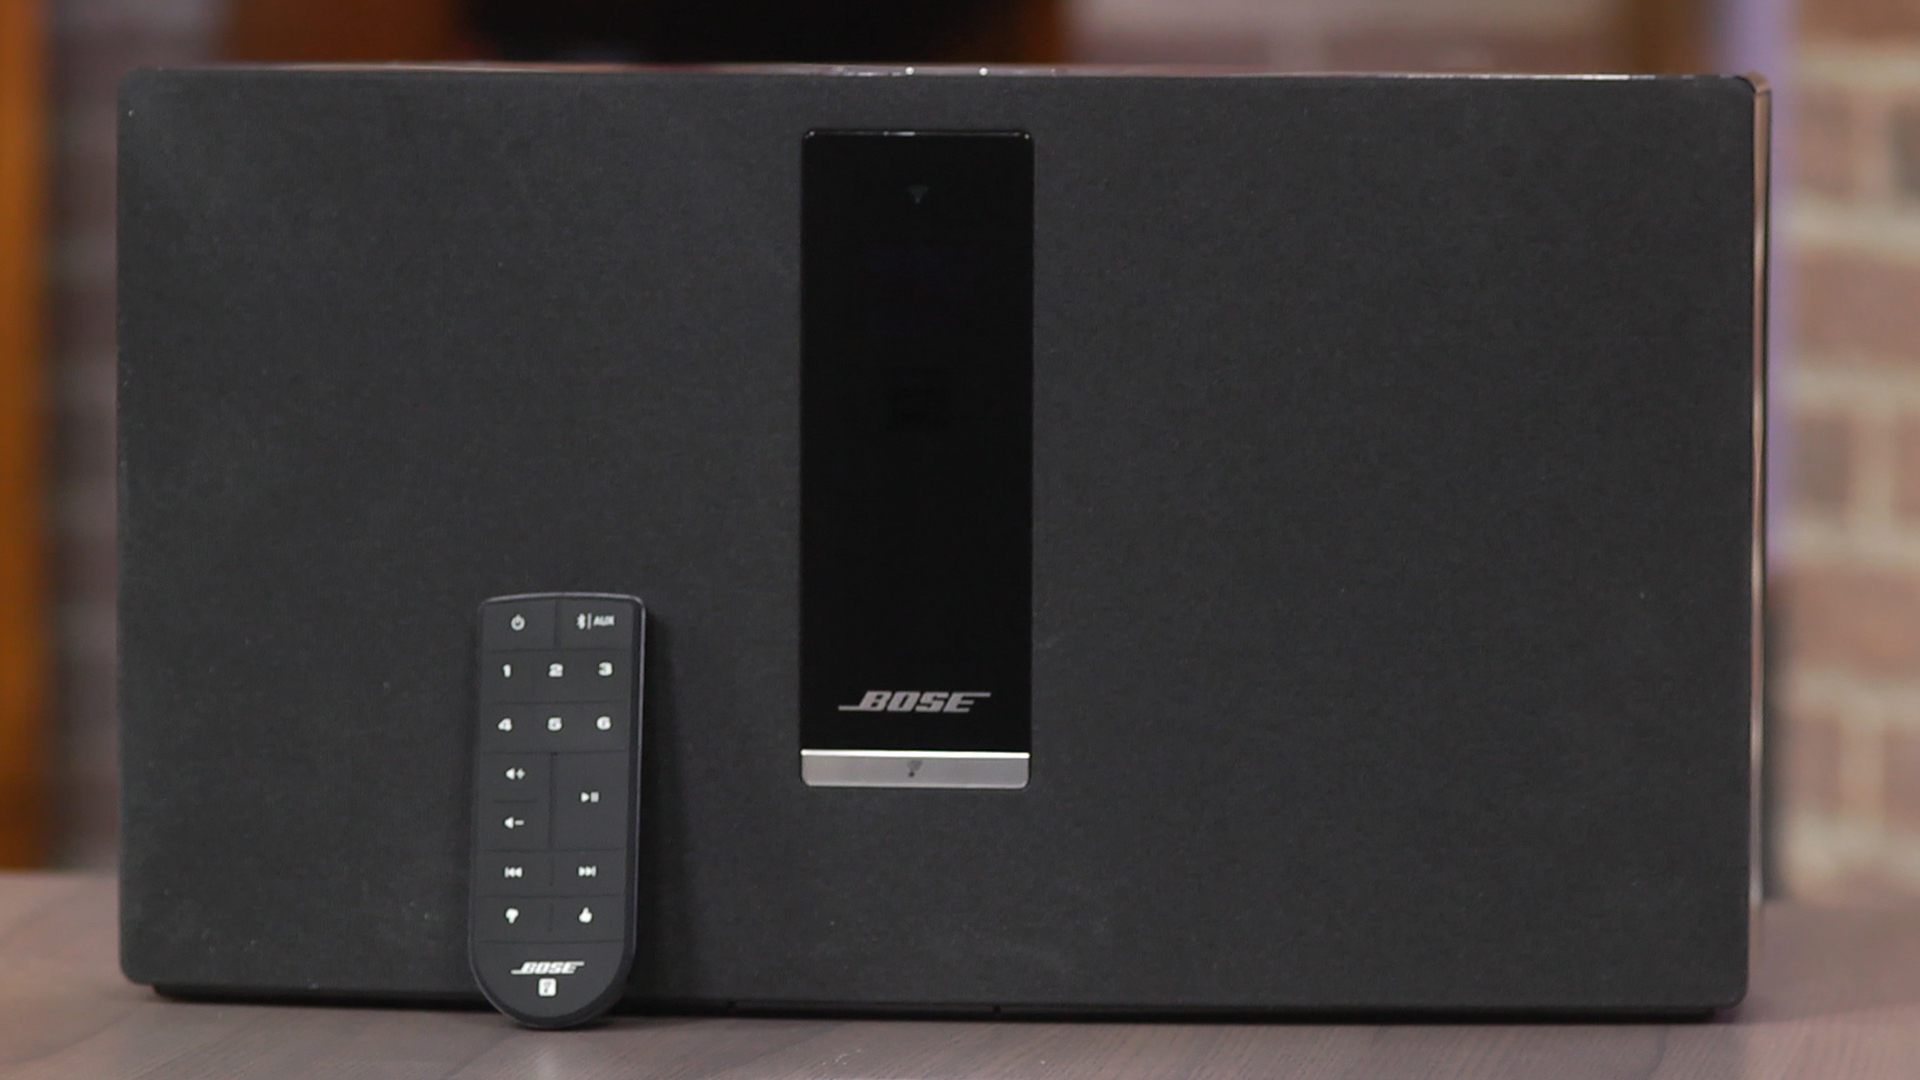 Video: Bose Wi-Fi speaker has a SoundTouch too much bass